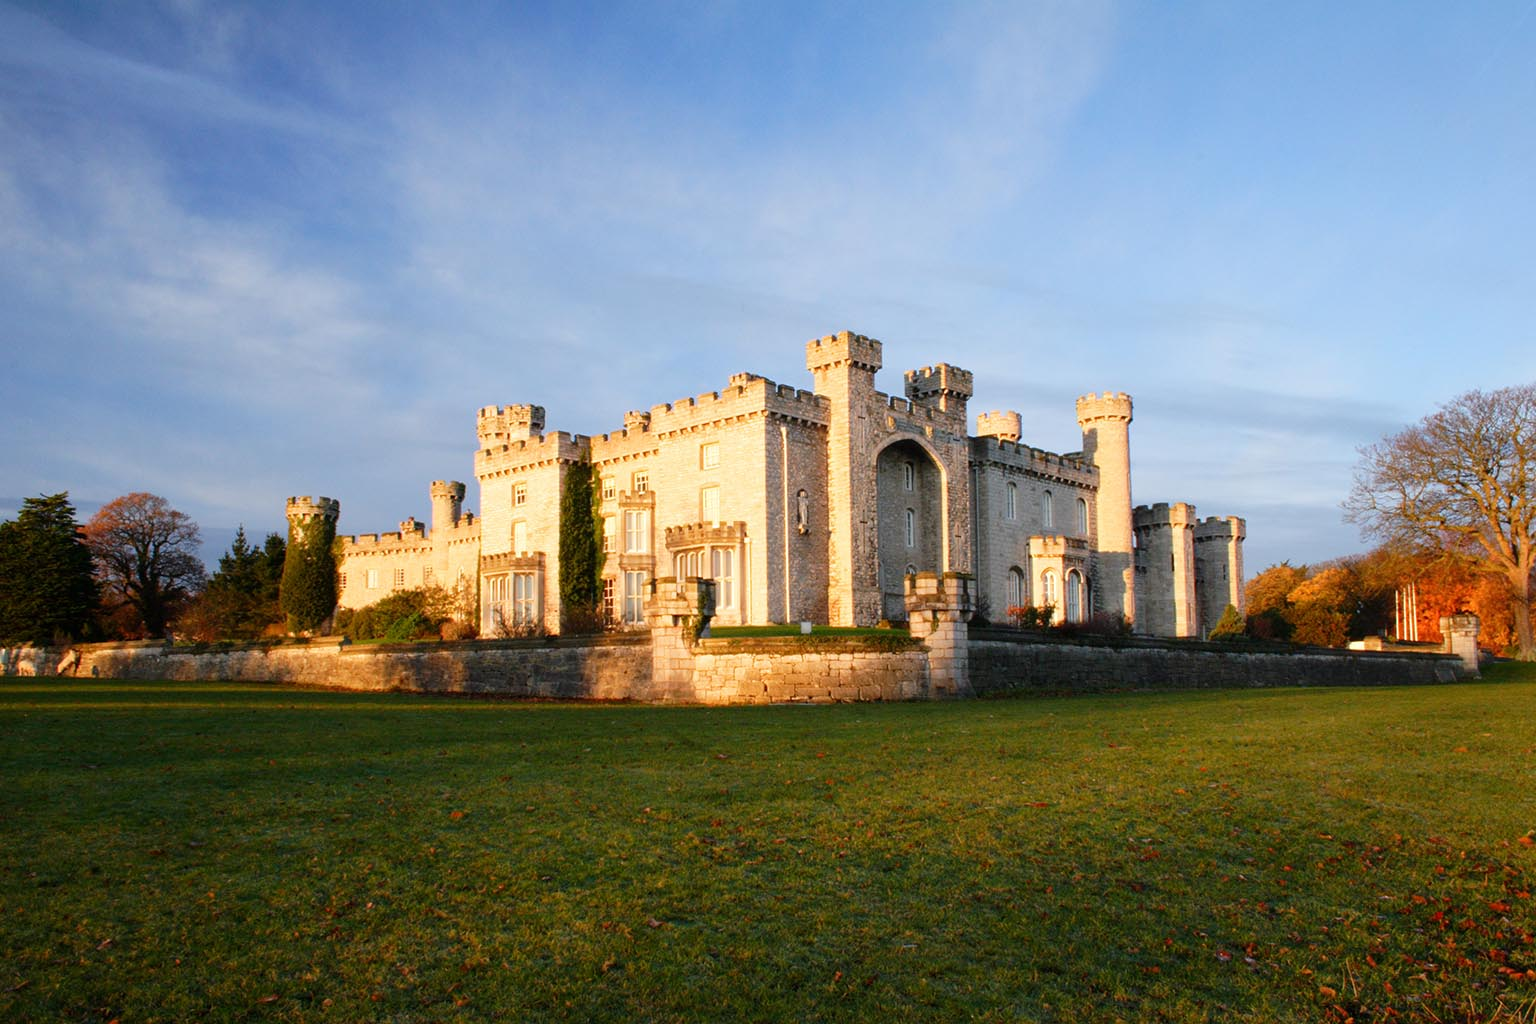 2. Bodelwyddan Castle and Park, Denbighshire, Free entry with National Art Pass -